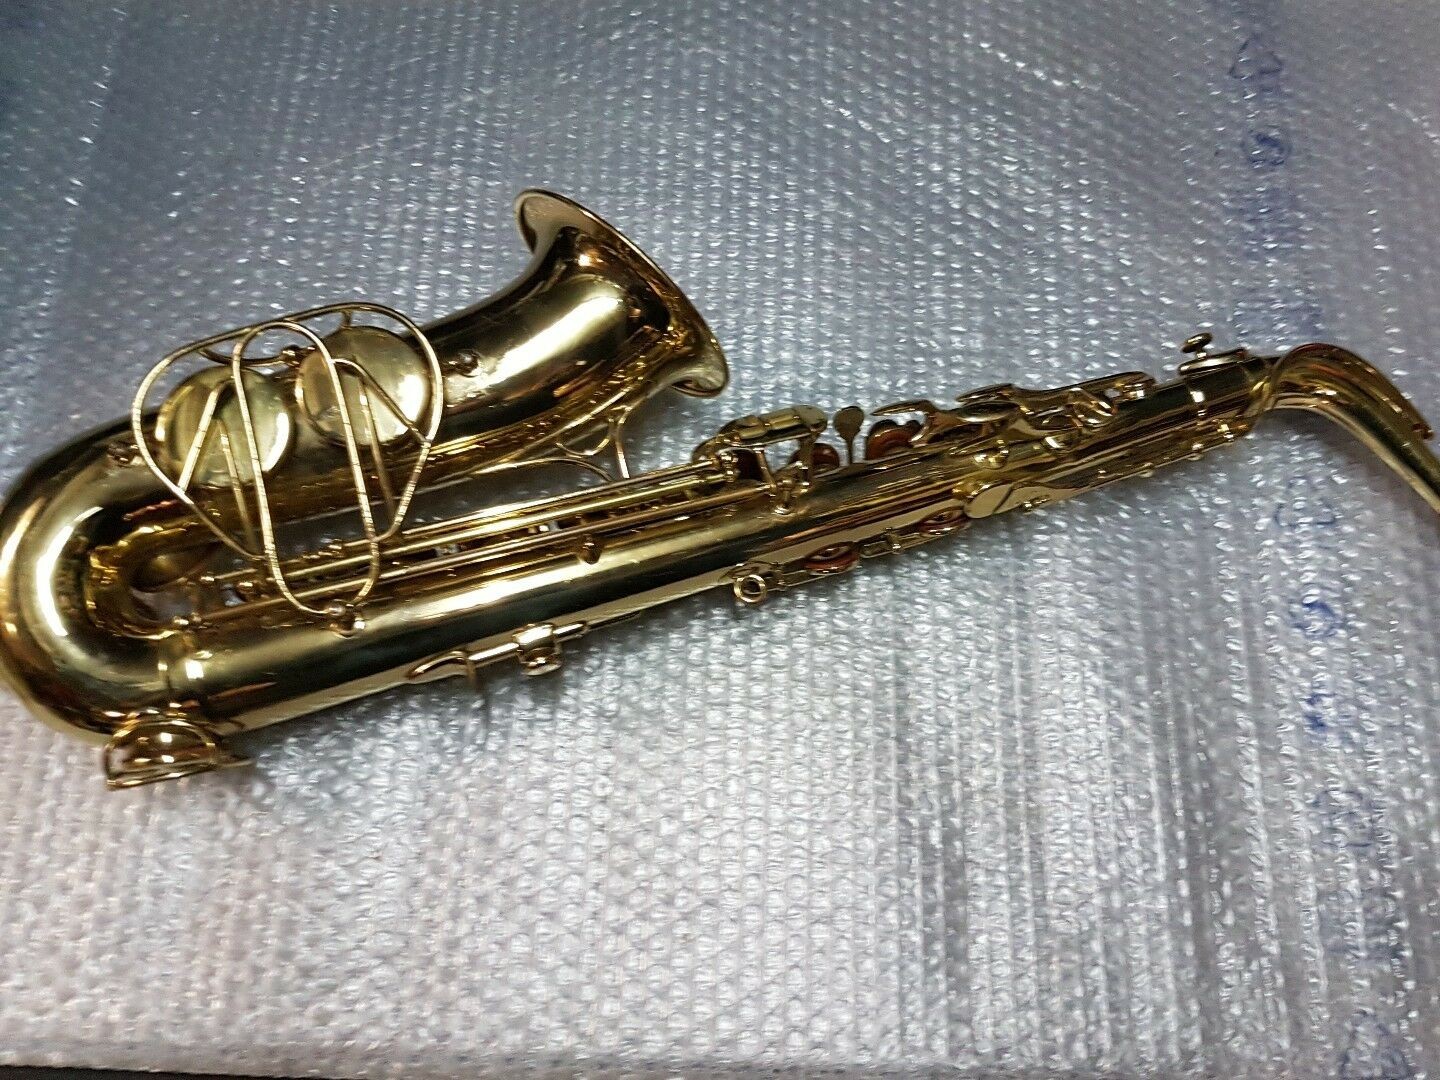 1947 THE MARTIN ALTO - ALT / ALTO SAX / SAXOPHONE - made in USA